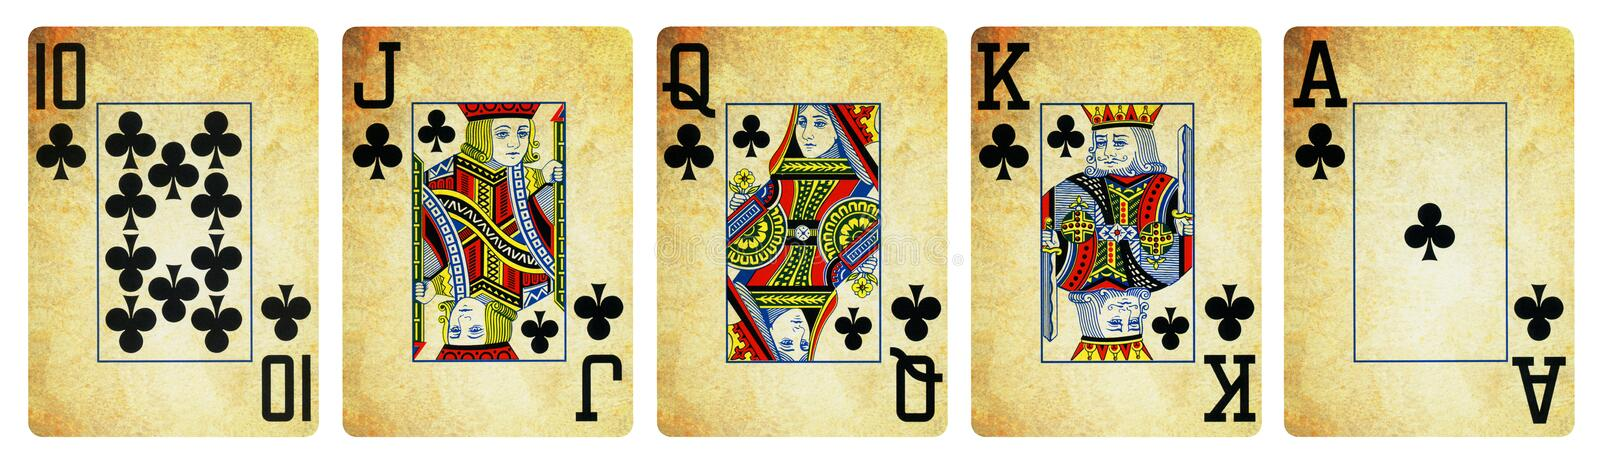 Clubs Suit Vintage Playing Cards - Isolated royalty free stock image